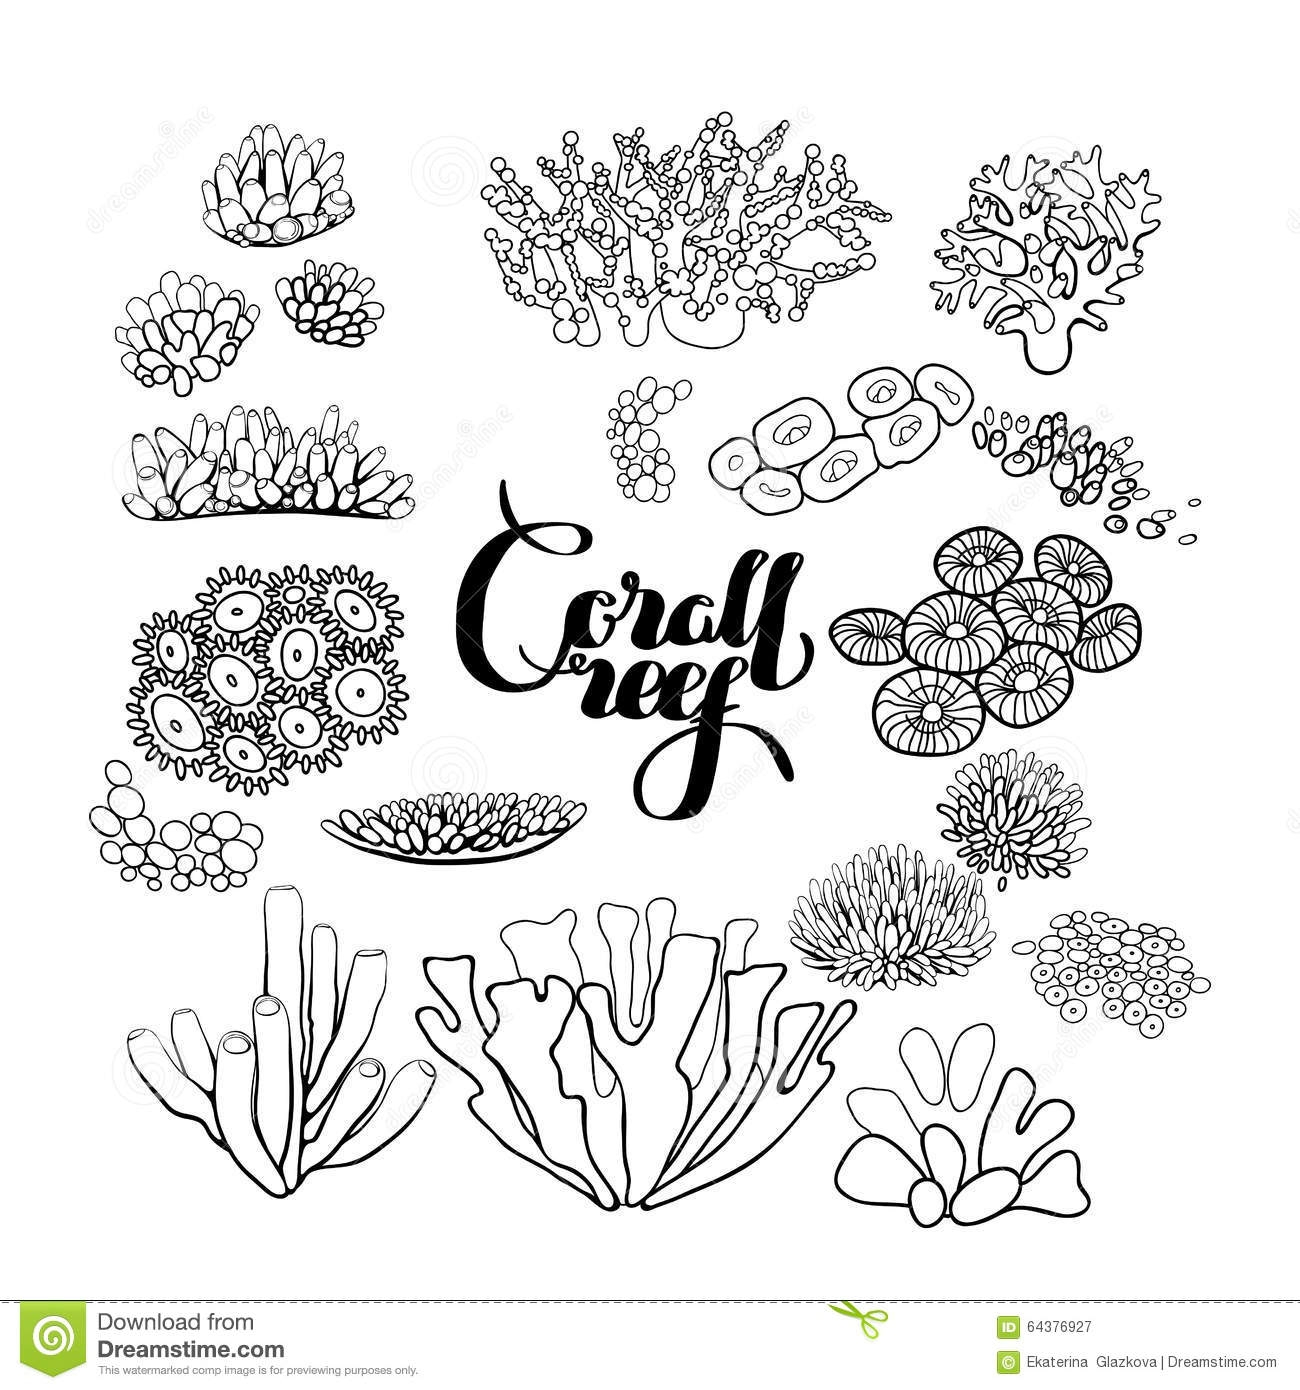 28 Seaweed Coloring Pages Selection | FREE COLORING PAGES